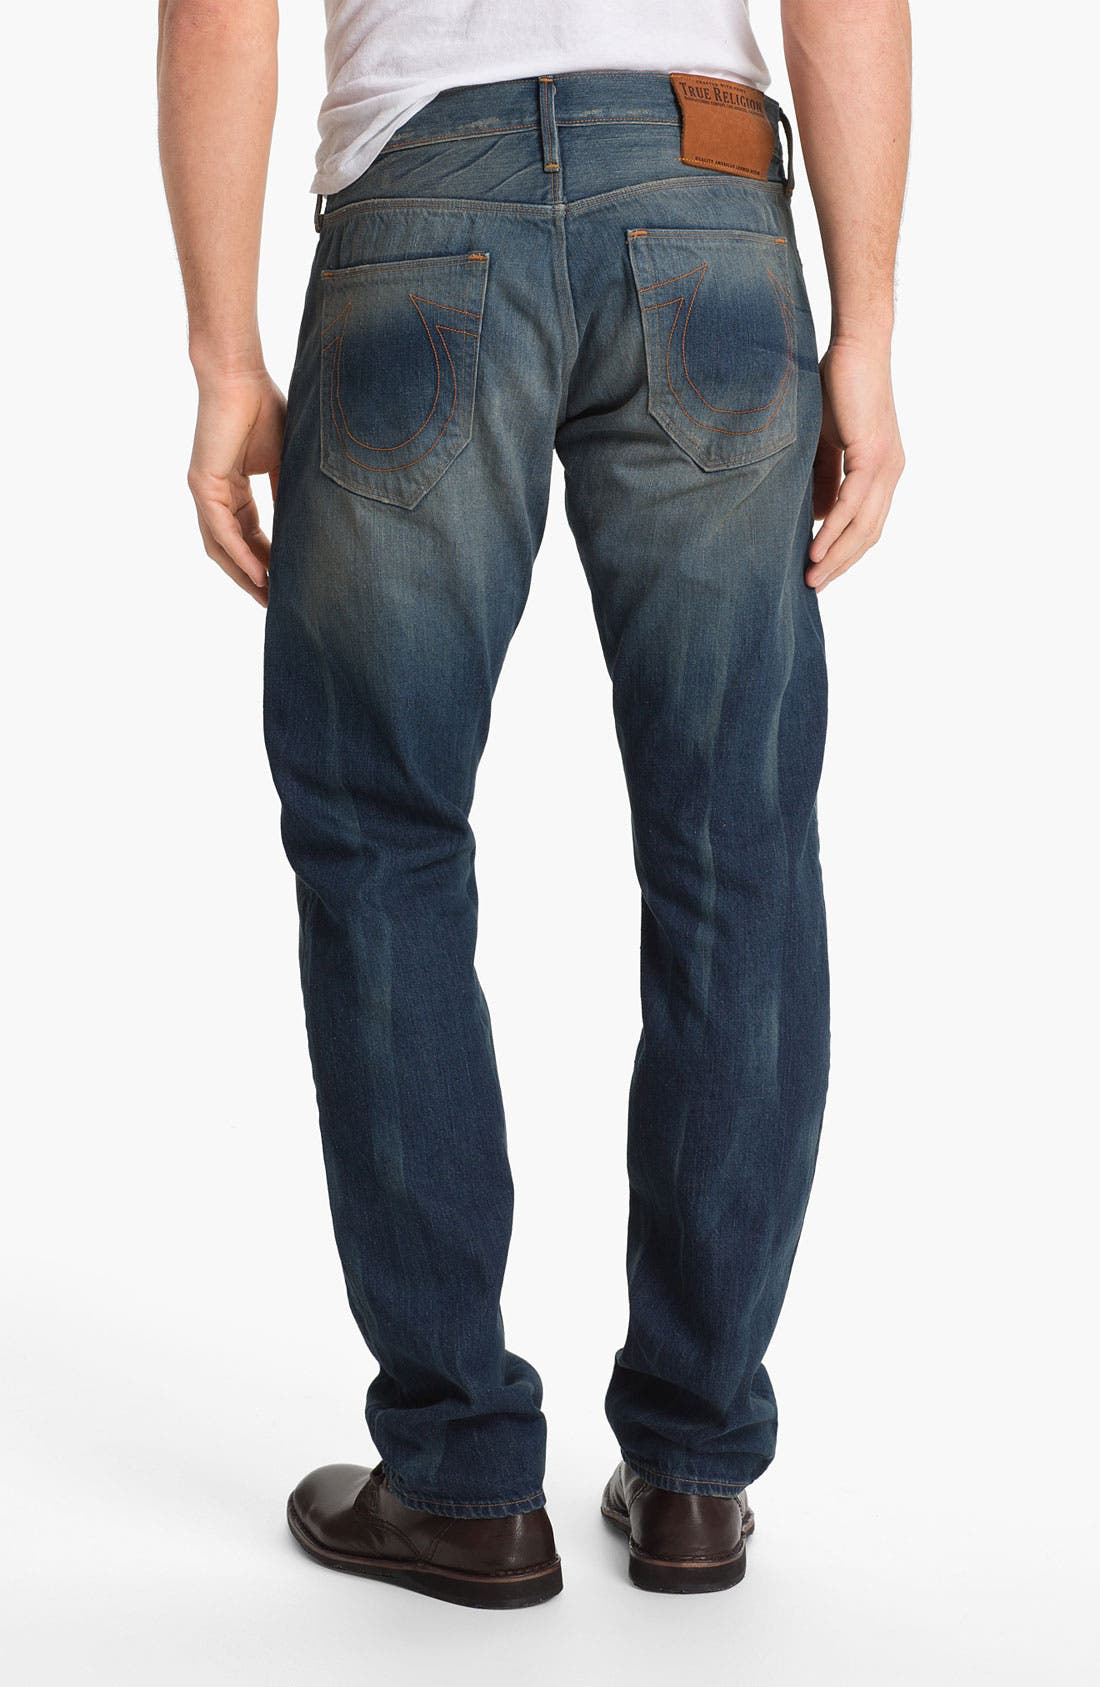 Main Image - True Religion Brand Jeans 'Geno 50s' Slim Straight Leg Jeans (Deadwood)